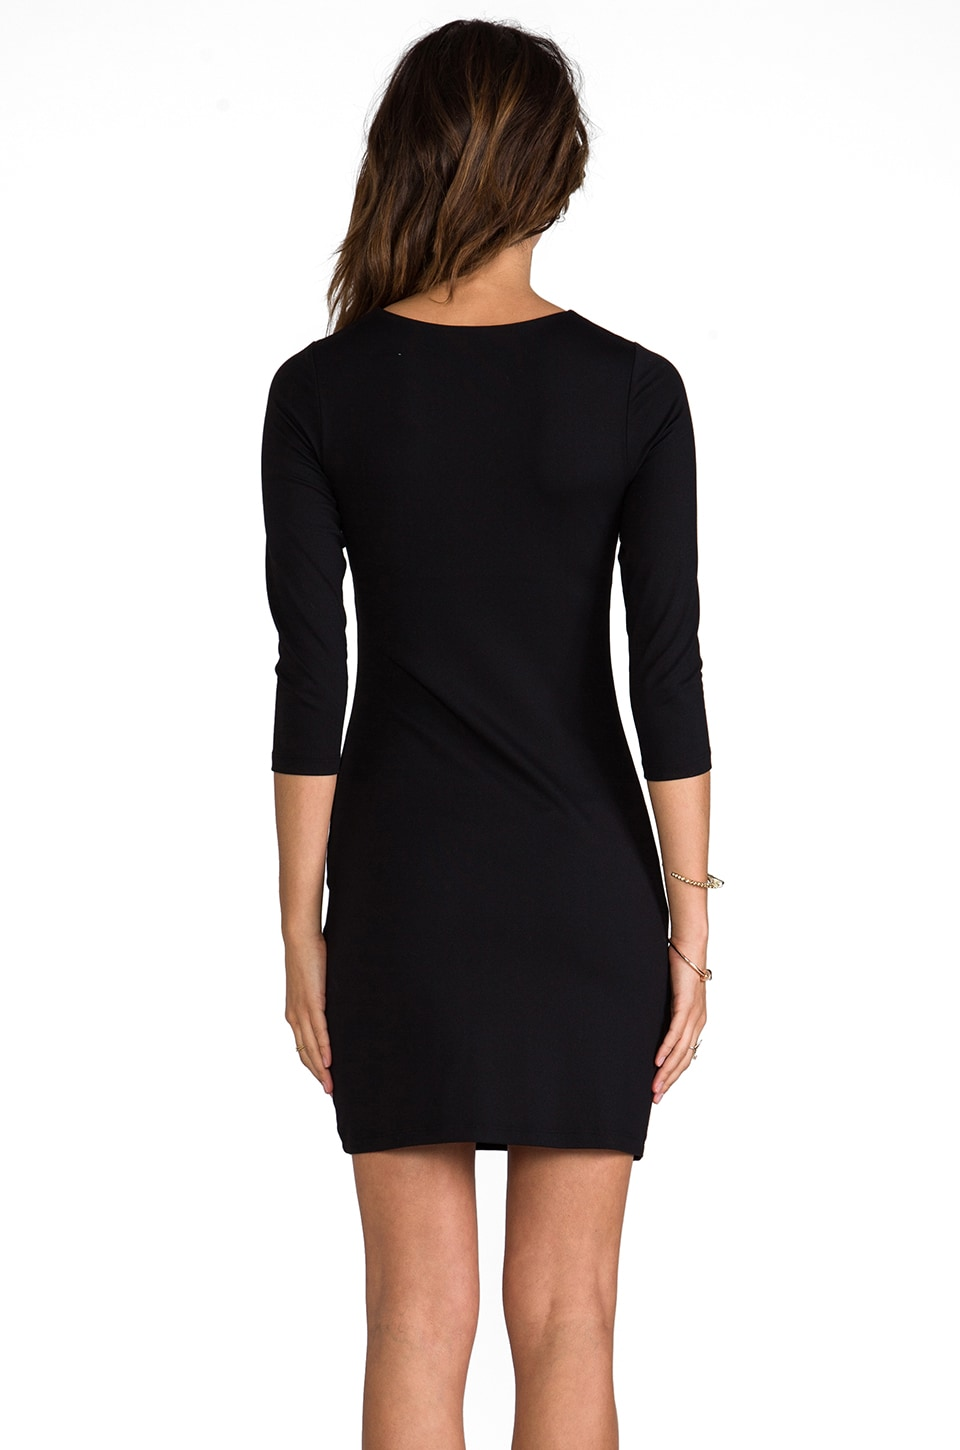 "Susana Monaco Berenice 20"" Dress in Black"